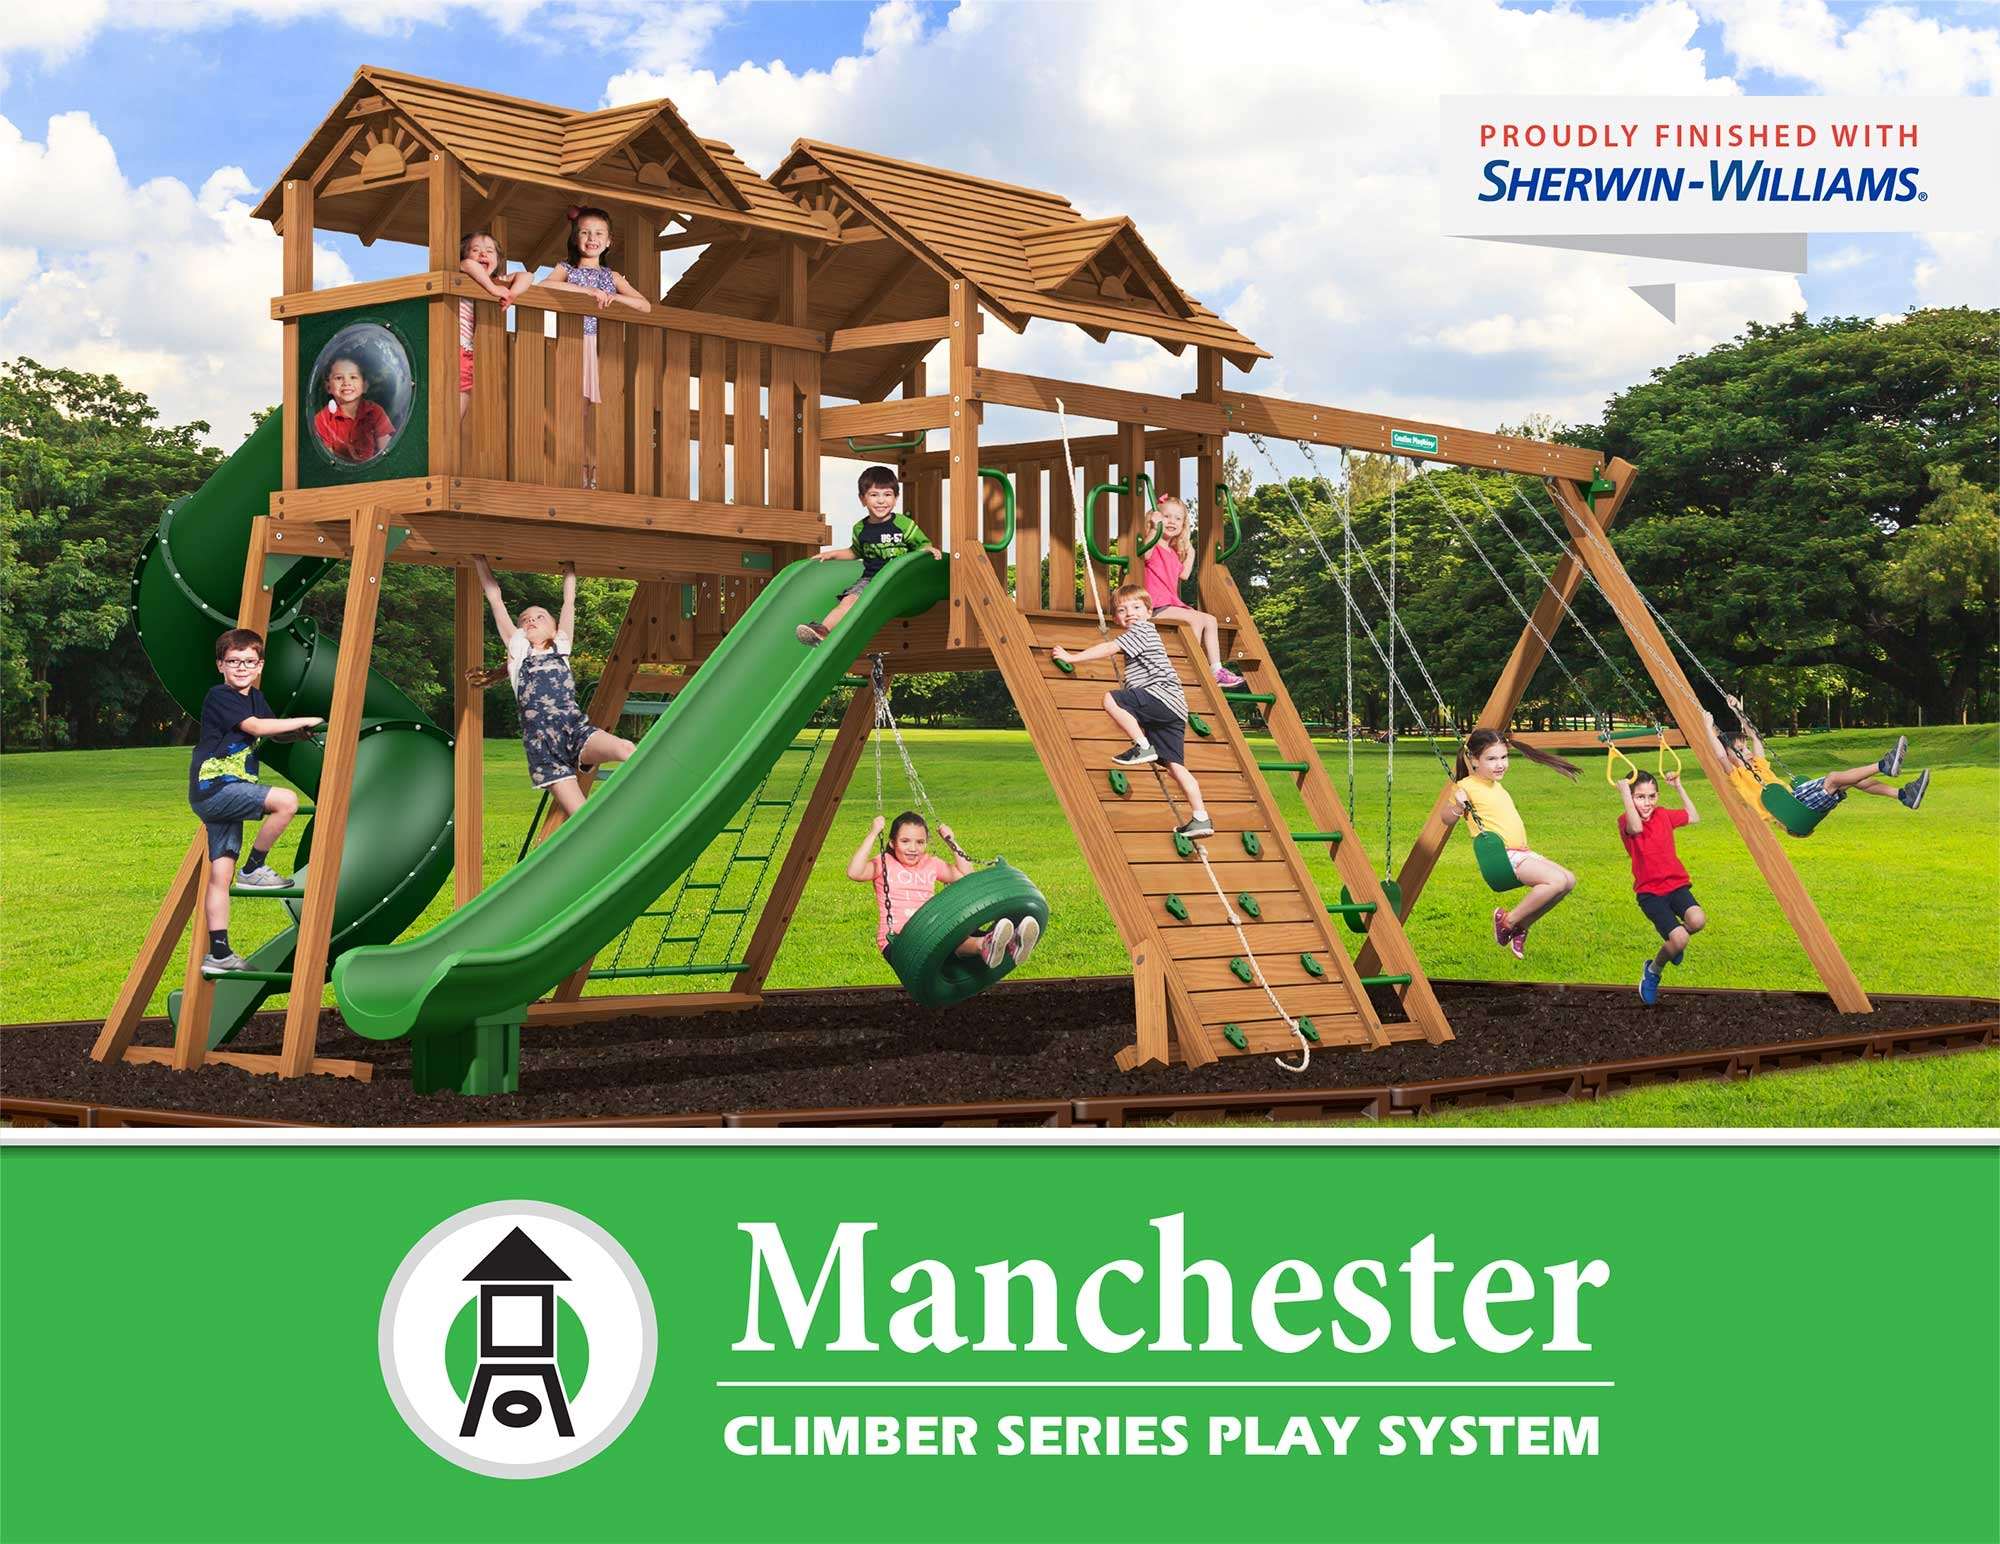 Creative Playthings Manchester Climber Series Play System